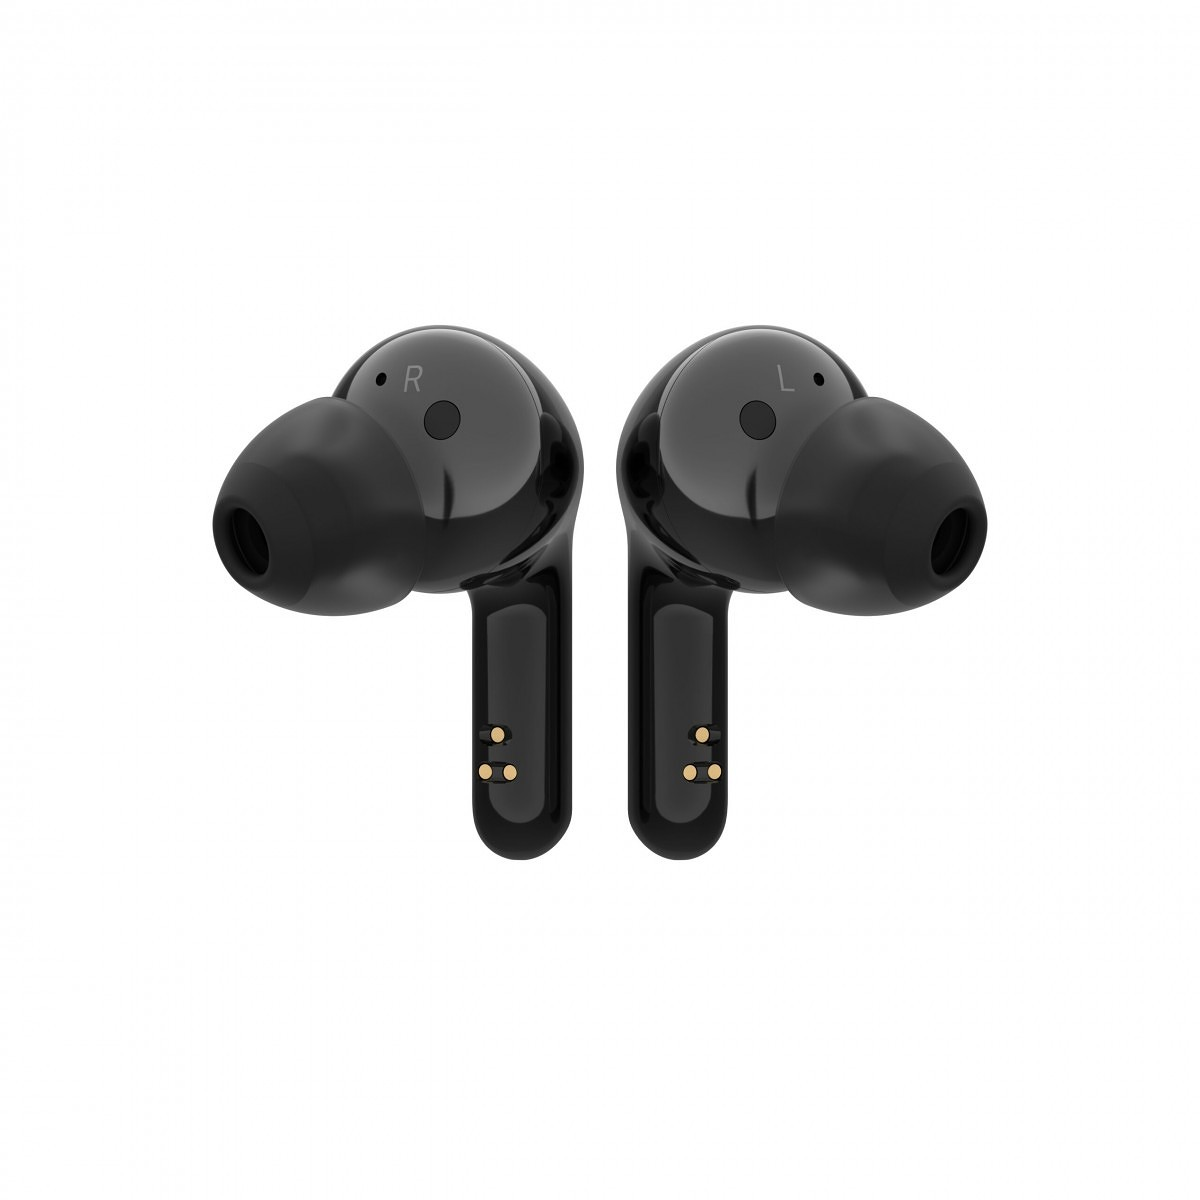 LG Unveils Self Cleaning Wireless Earbuds With Fast Charging